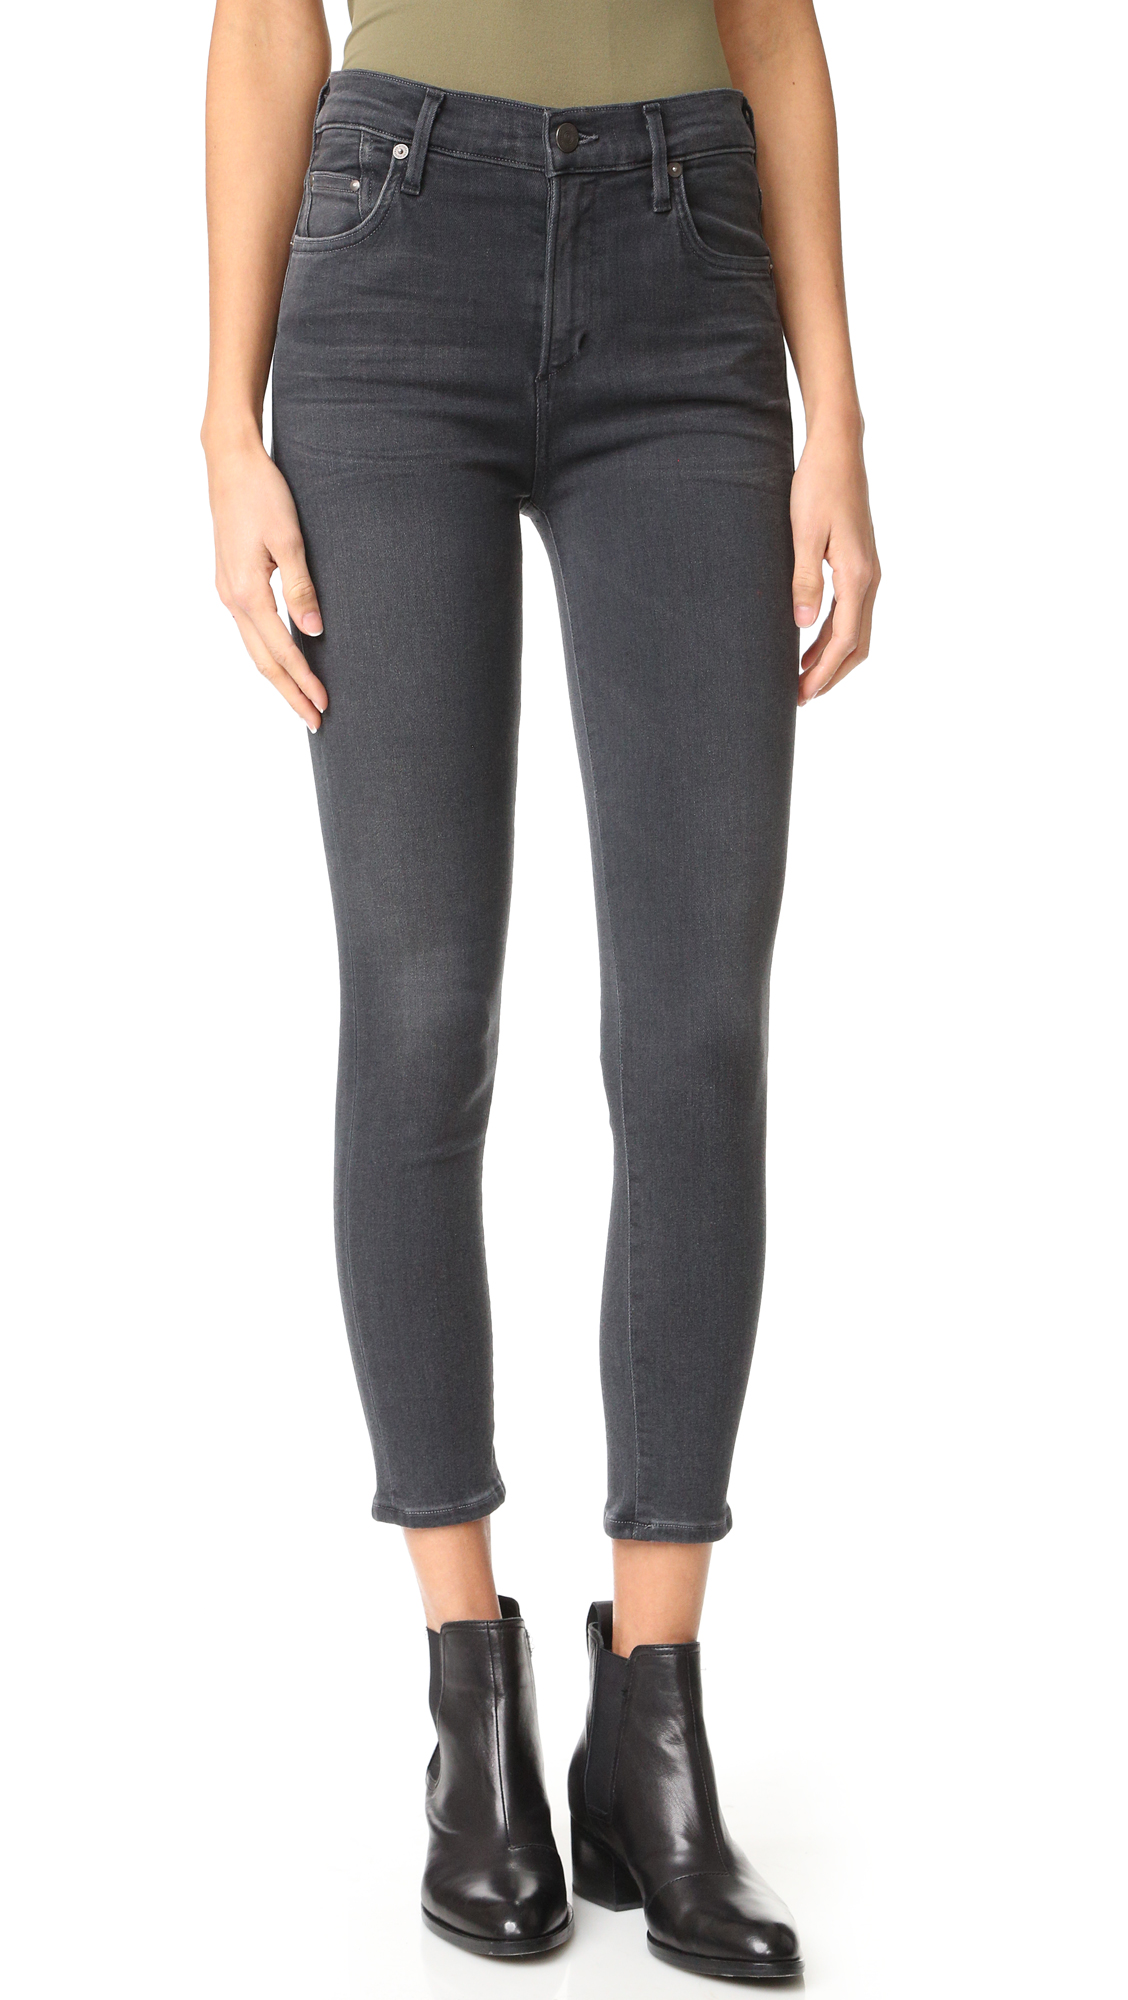 Citizens of Humanity High Rise Rocket Crop Skinny Jeans - Chateau